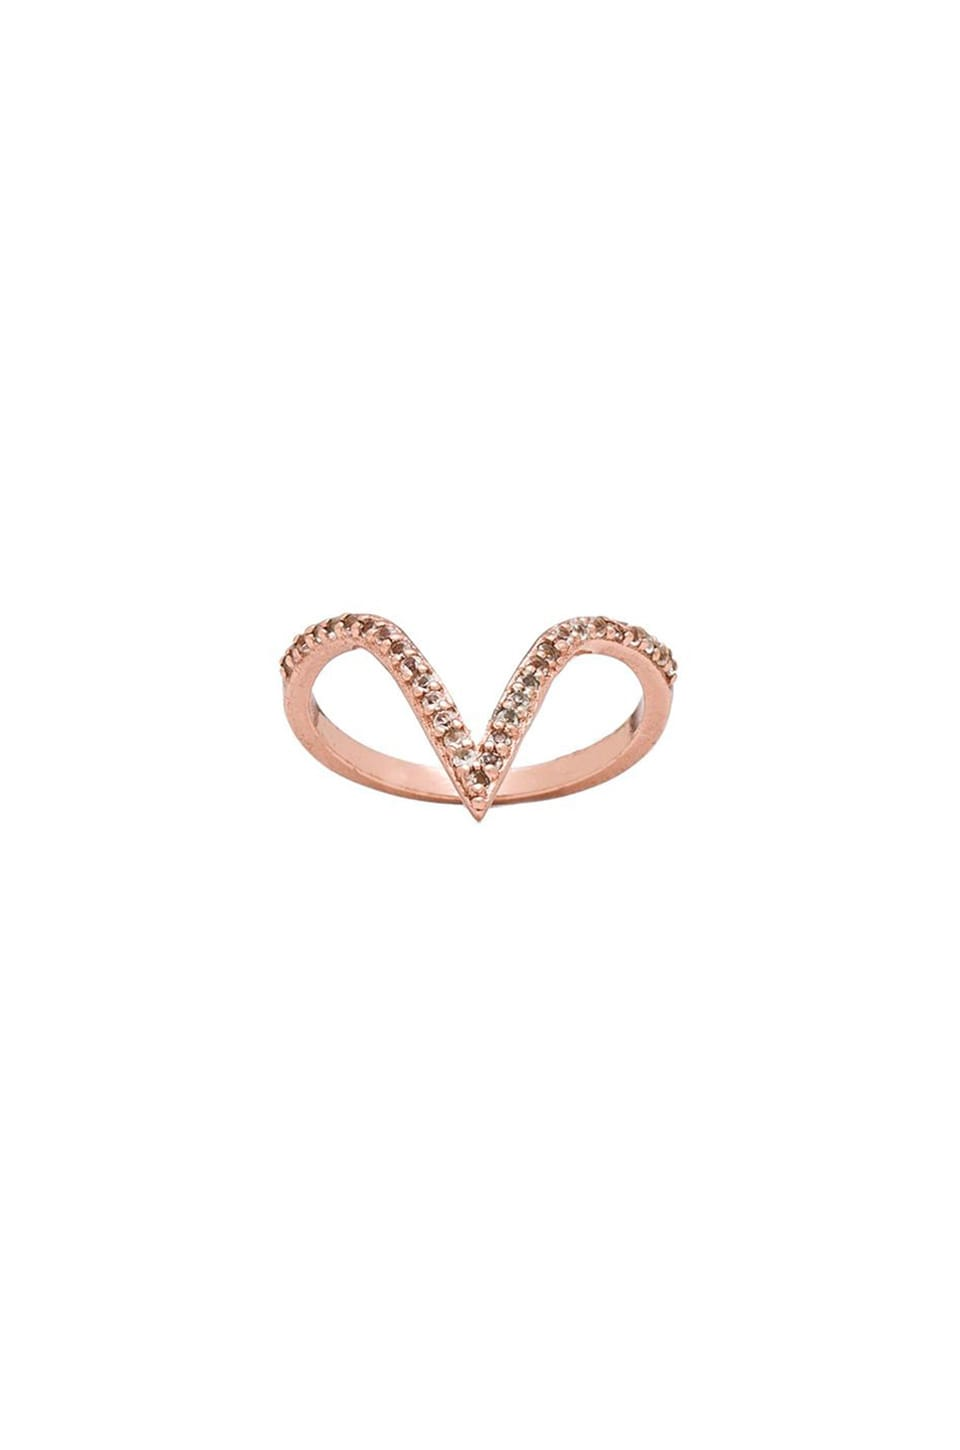 Alex Mika V Ring in Rose Gold